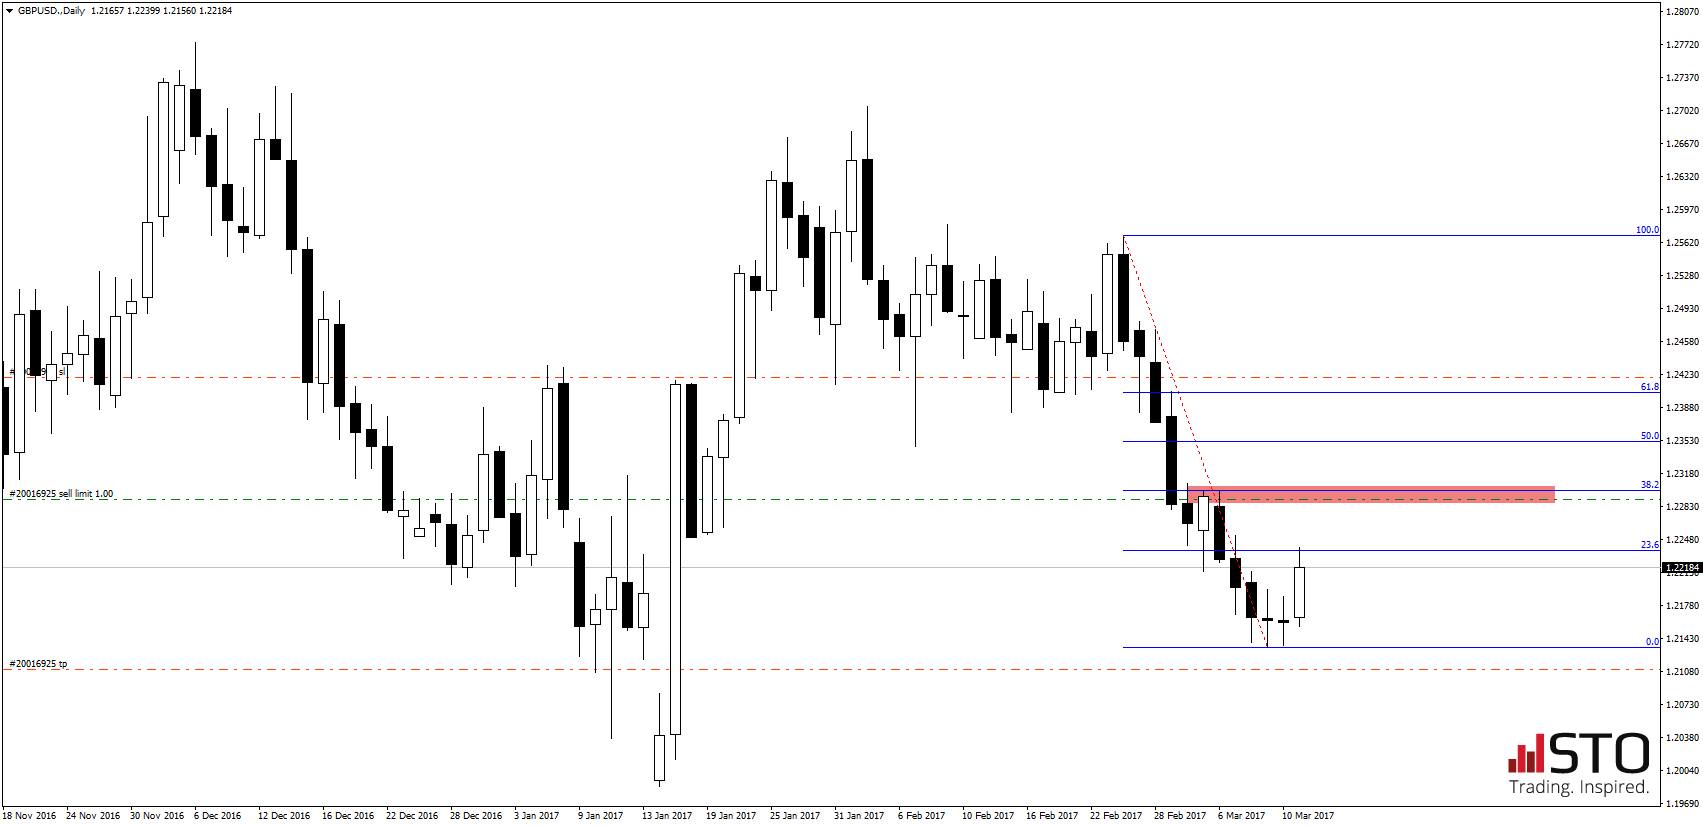 Credit suisse forex technical analysis